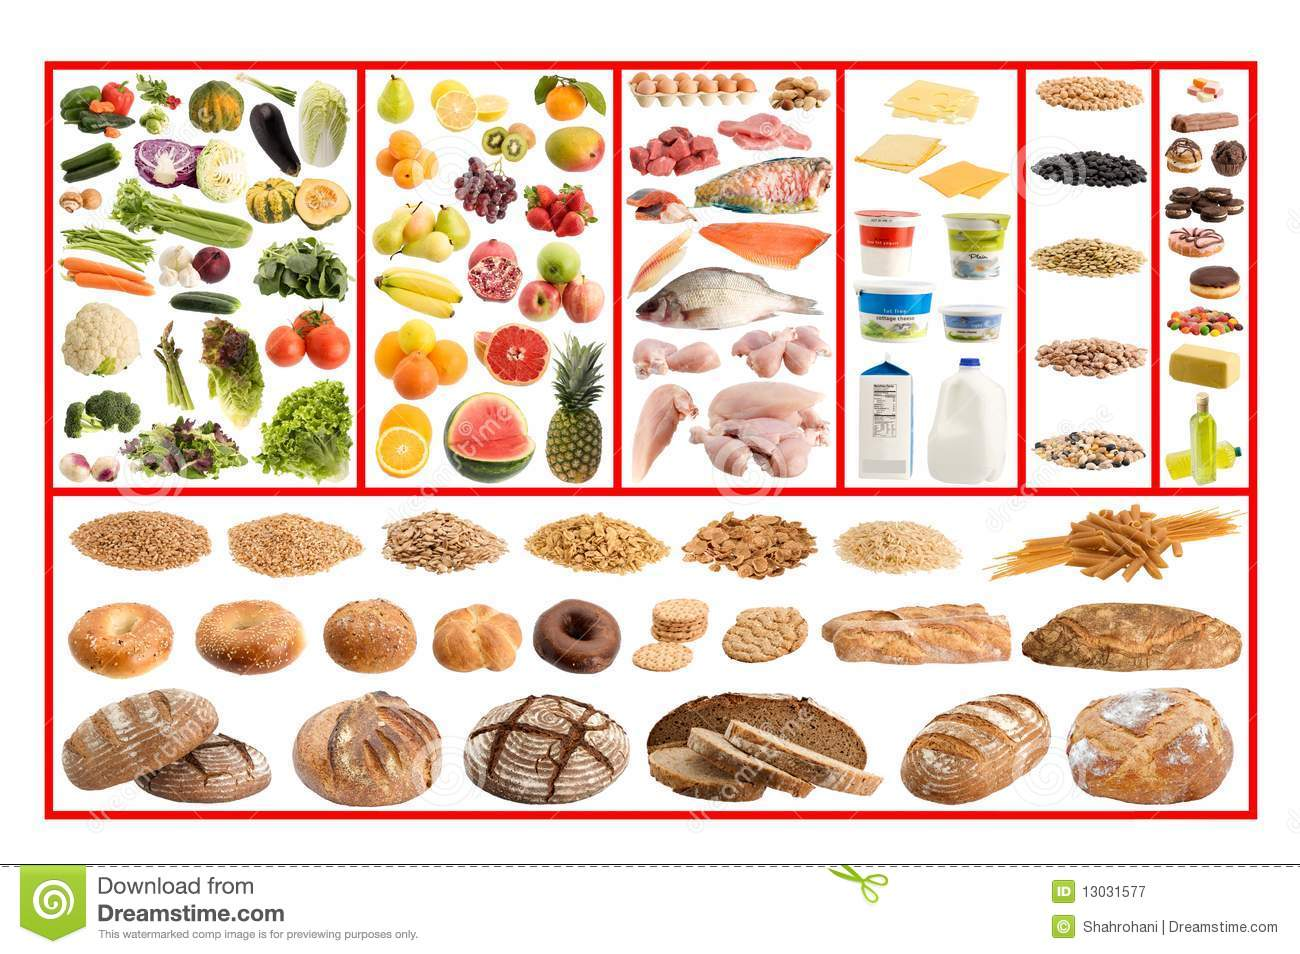 Healthy Food Guide Royalty Free Stock Photography Image